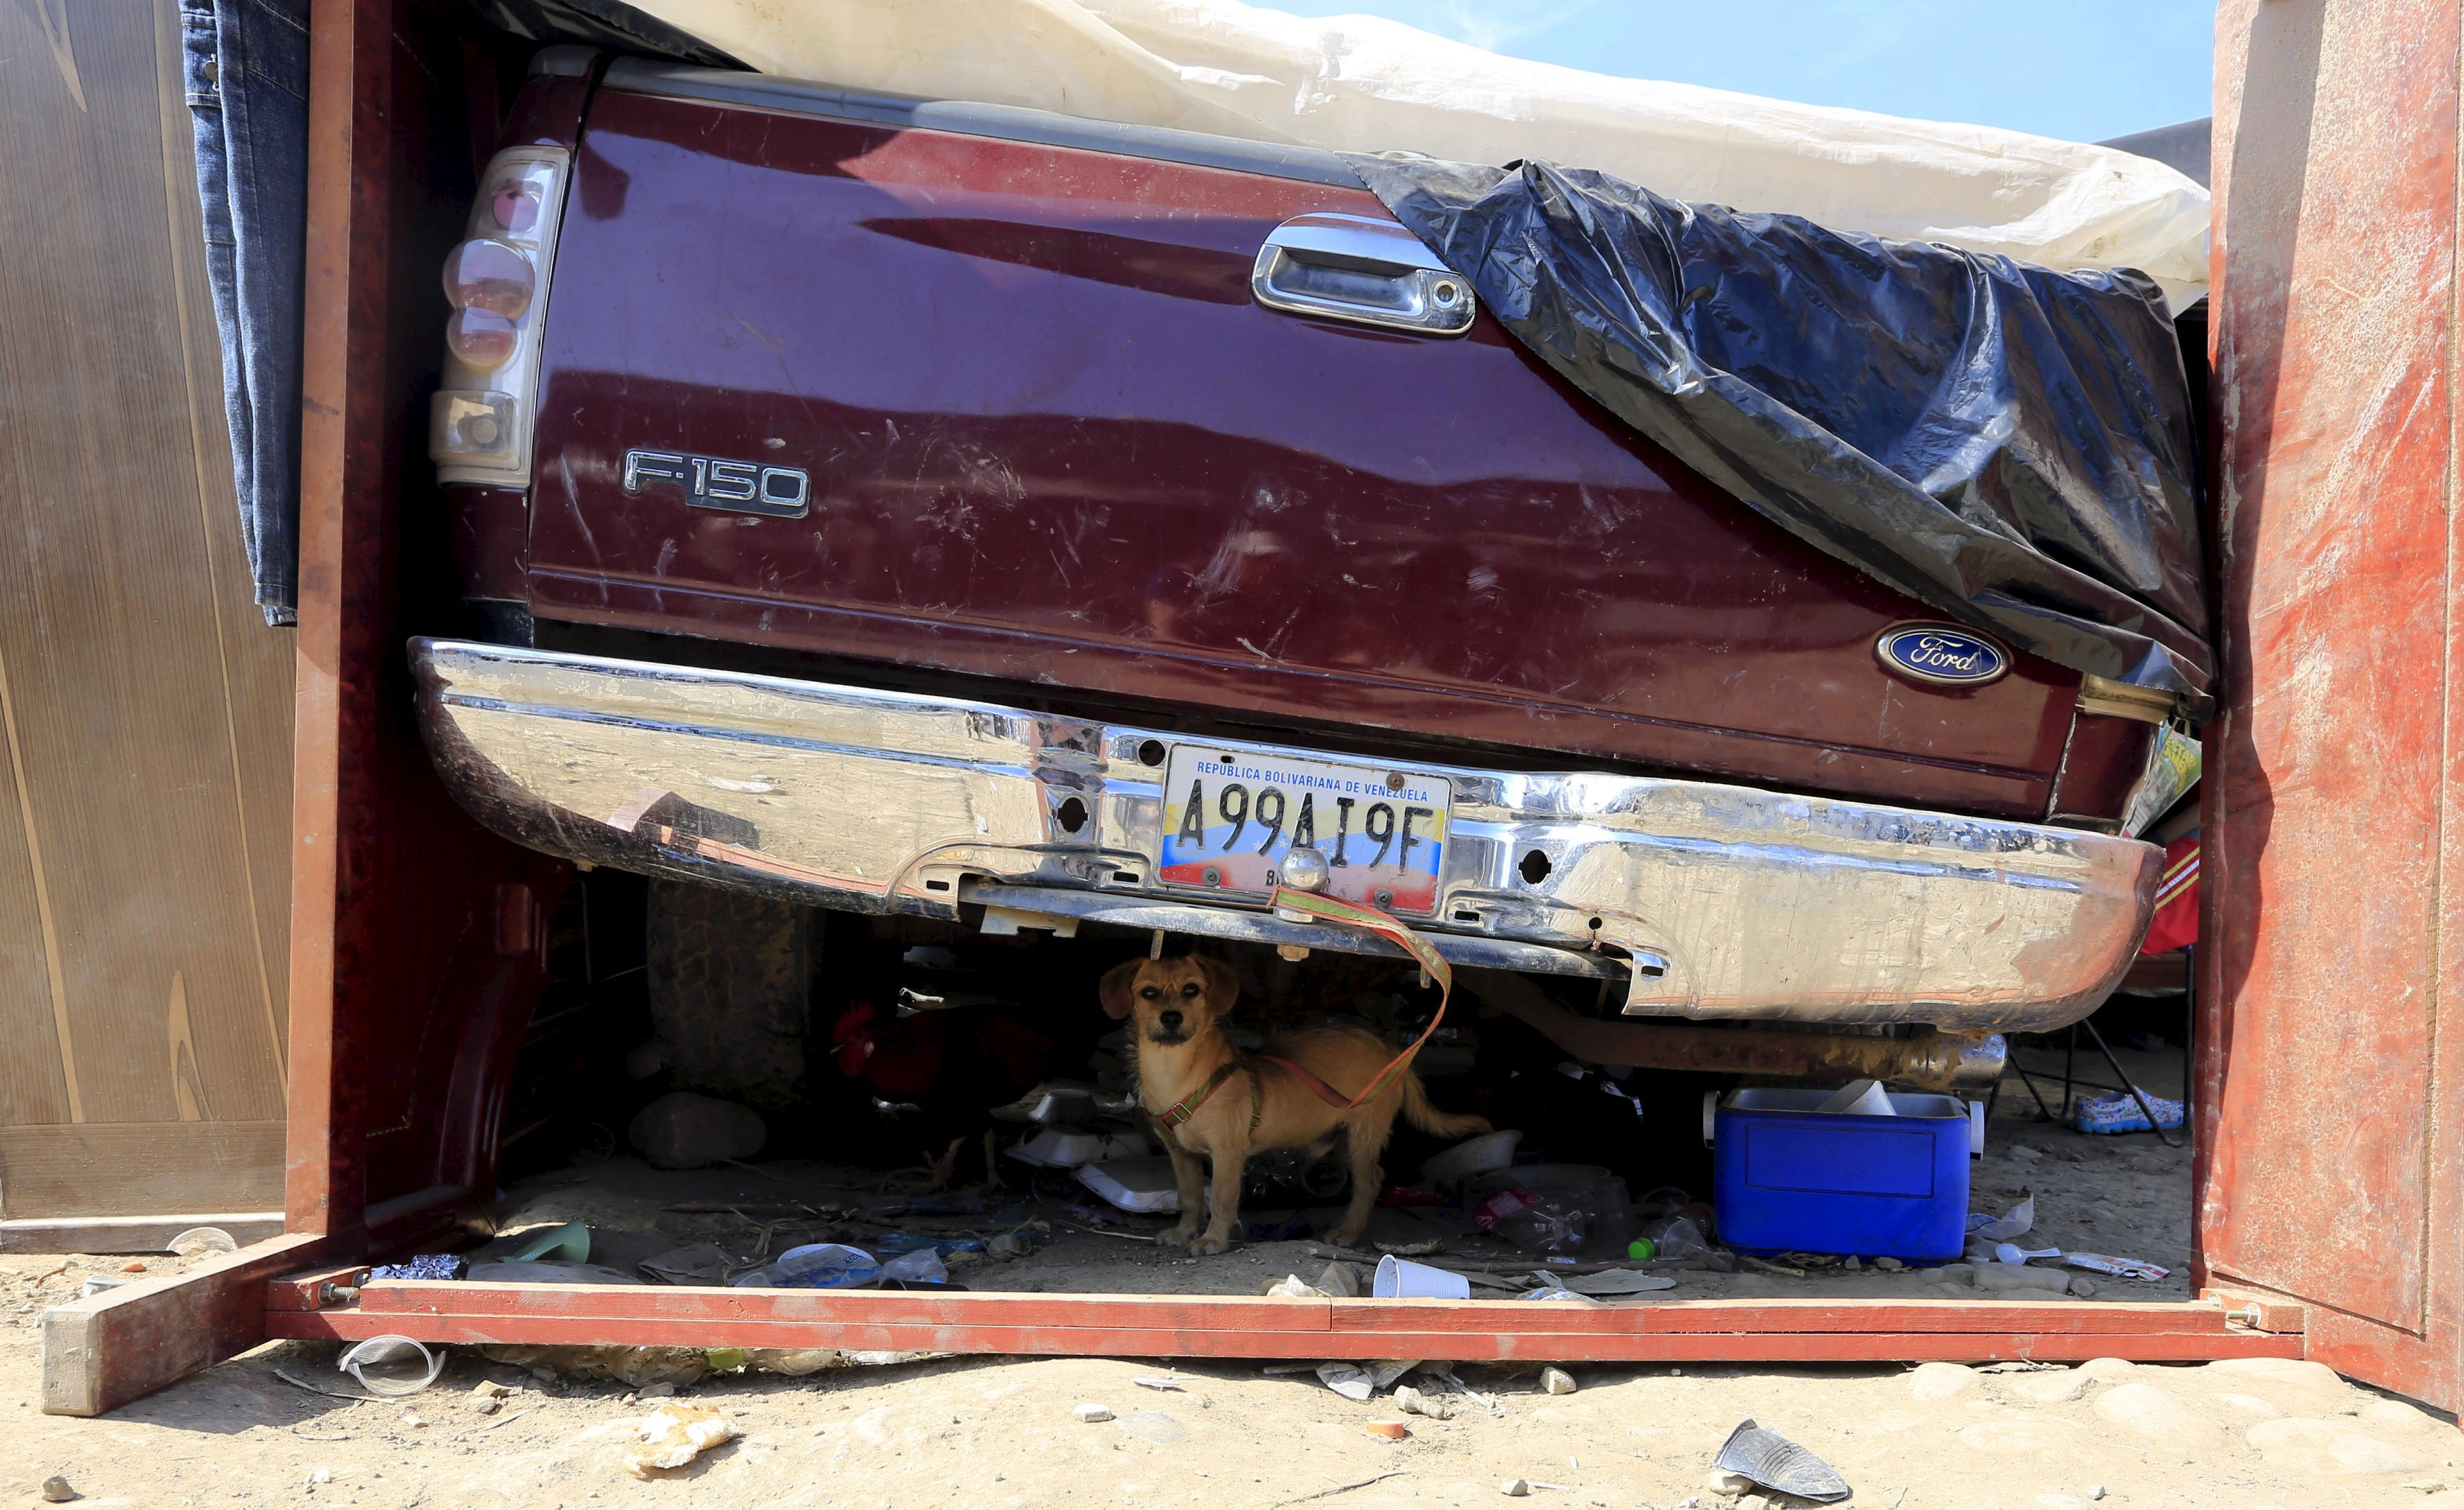 A dog stands under a car in a temporary shelter where its owner has been living temporarily, near the Colombian village of Villa del Rosario, close to the border with Venezuela August 27, 2015. Venezuela closed two border crossings last week and began deporting hundreds of Colombians, as part of measures the government says are designed to control smuggling and paramilitary activity. REUTERS/Jose Miguel Gomez